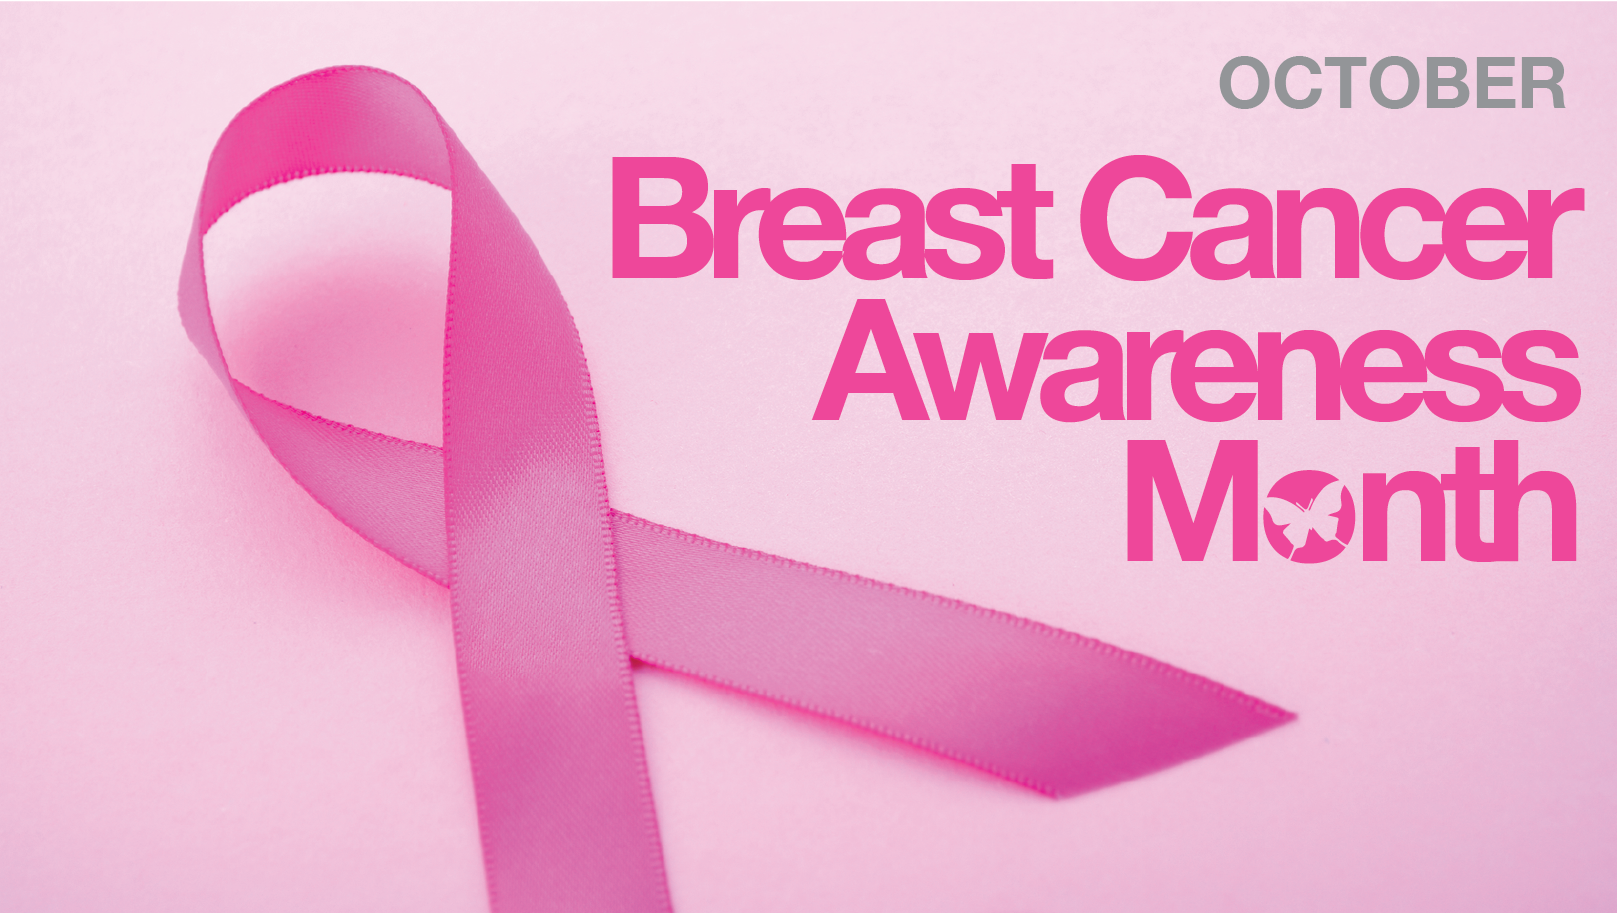 Breast Cancer Awareness Month BCAM also referred to in America as National Breast Cancer Awareness Month NBCAM is an annual international health campaign